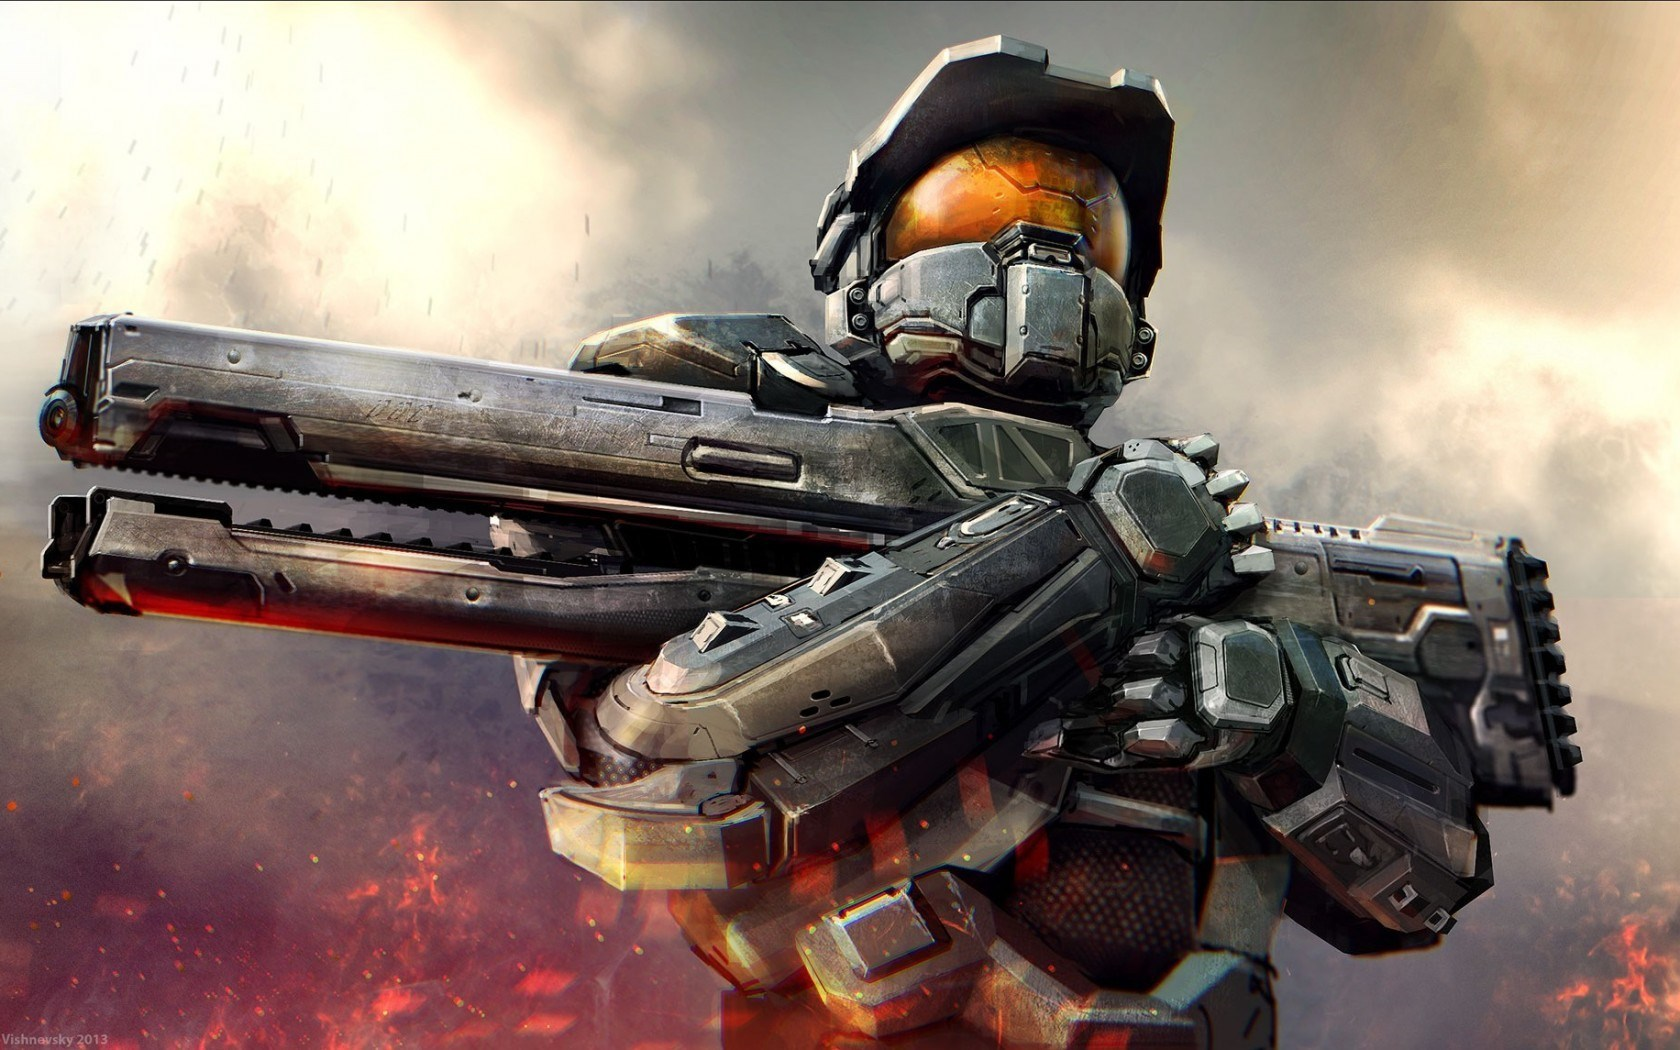 Wallpapers Games Awesome Halo Wallpaper 1680x1050